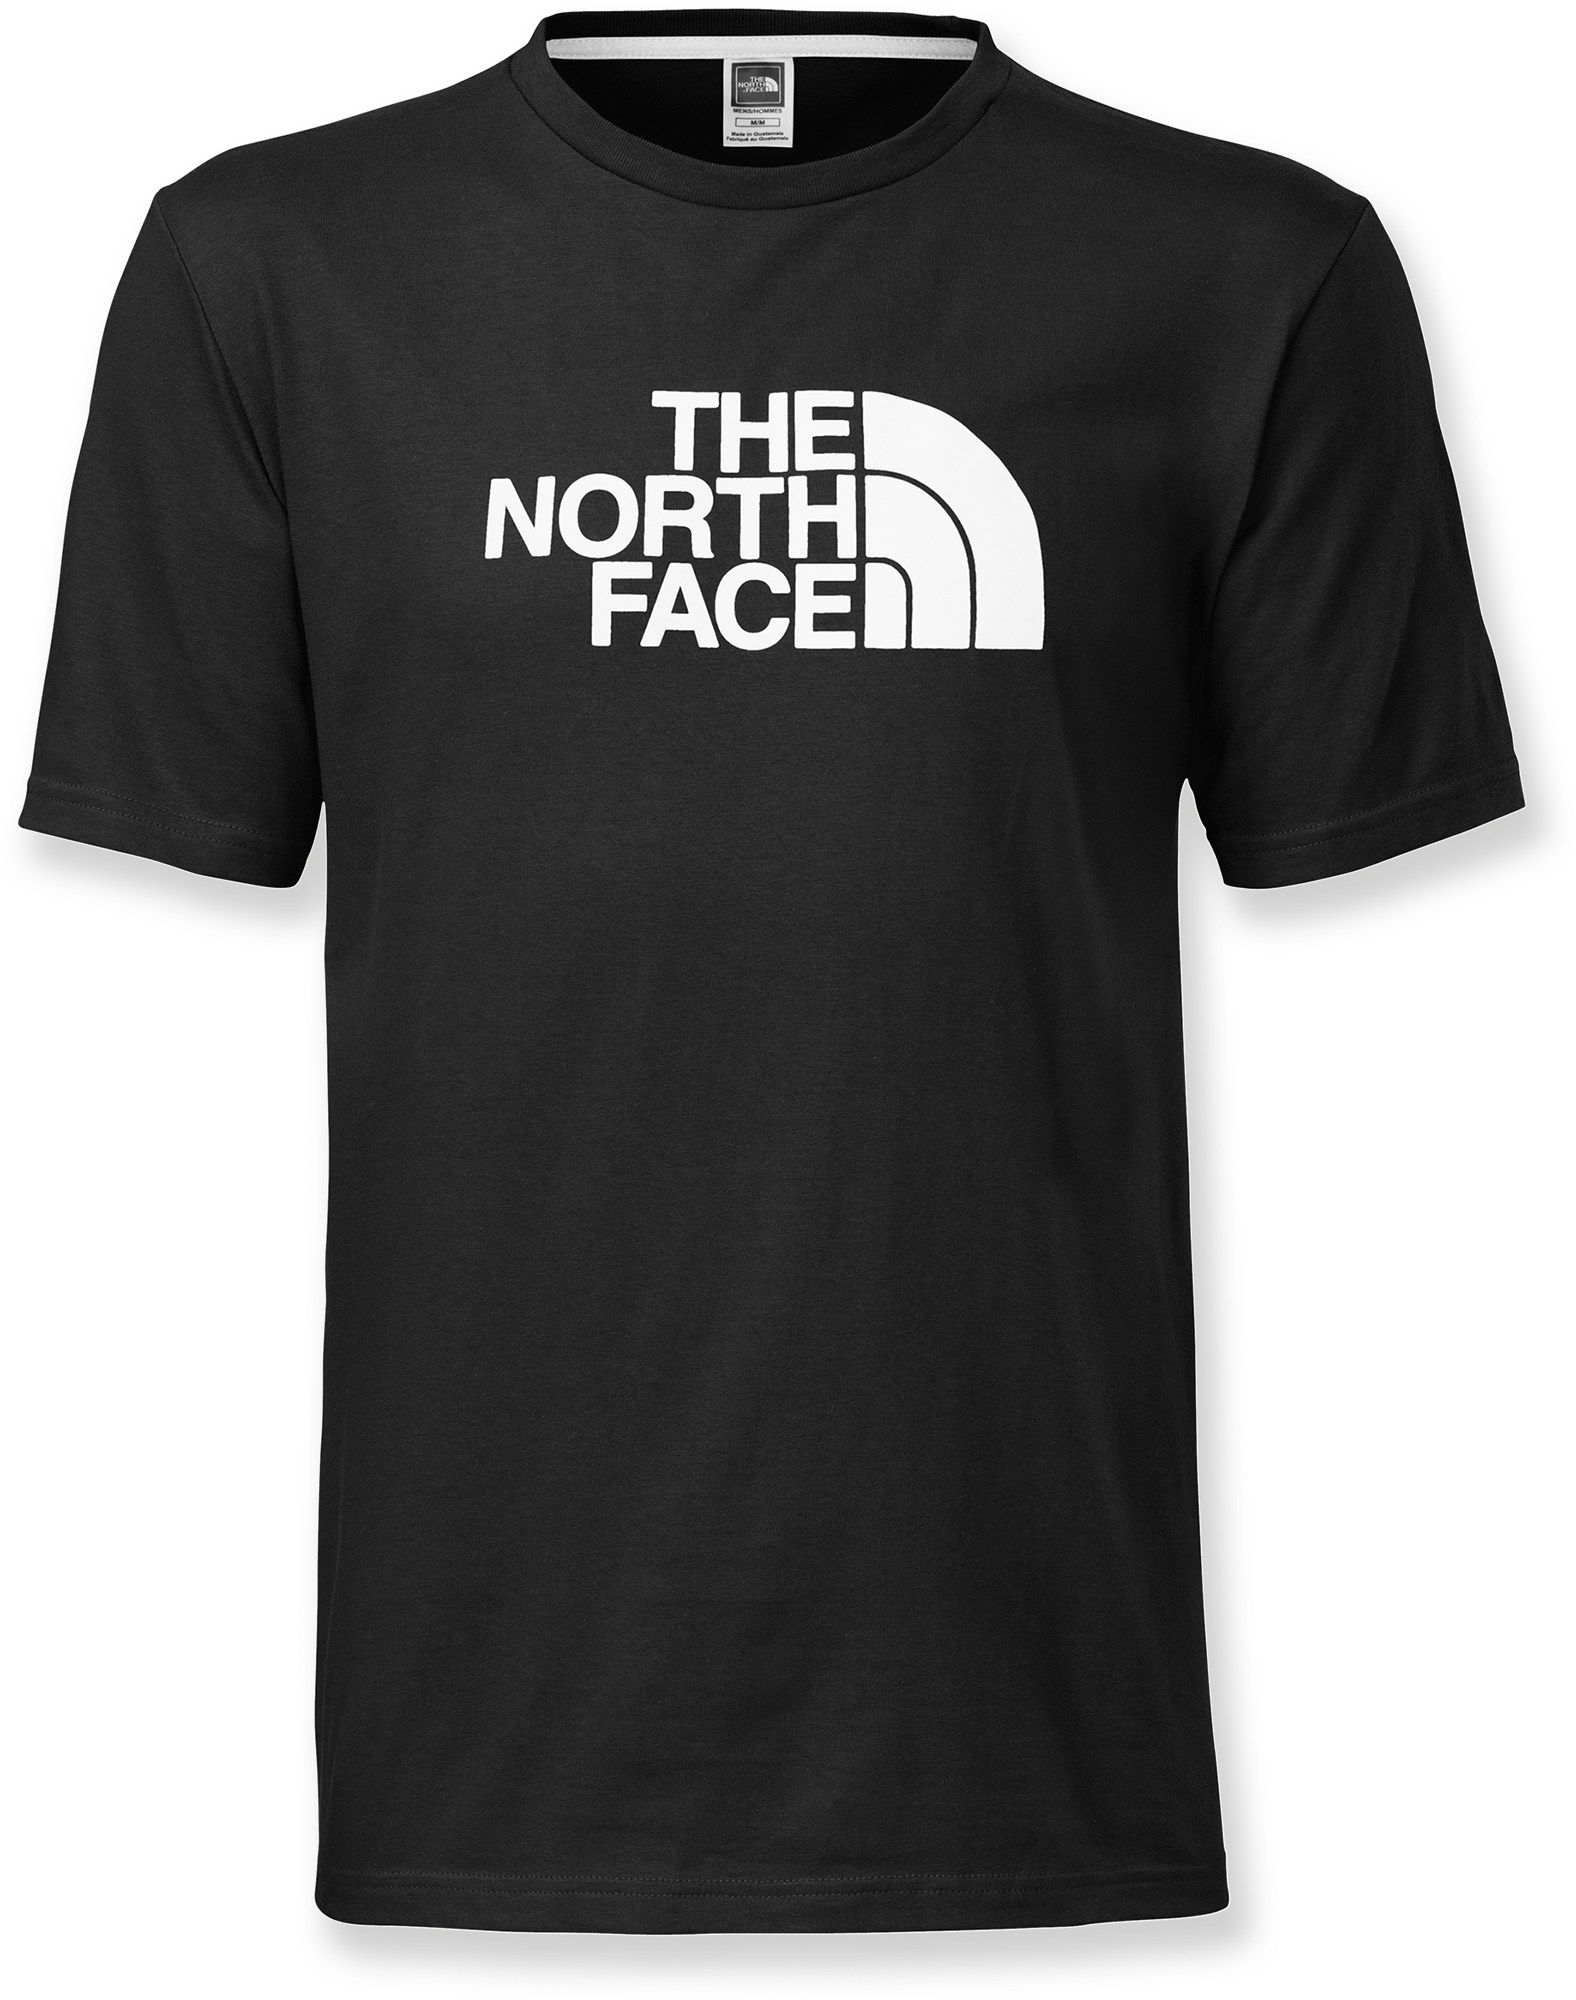 The North Face Half Dome T-Shirt - Men's - REI Garage